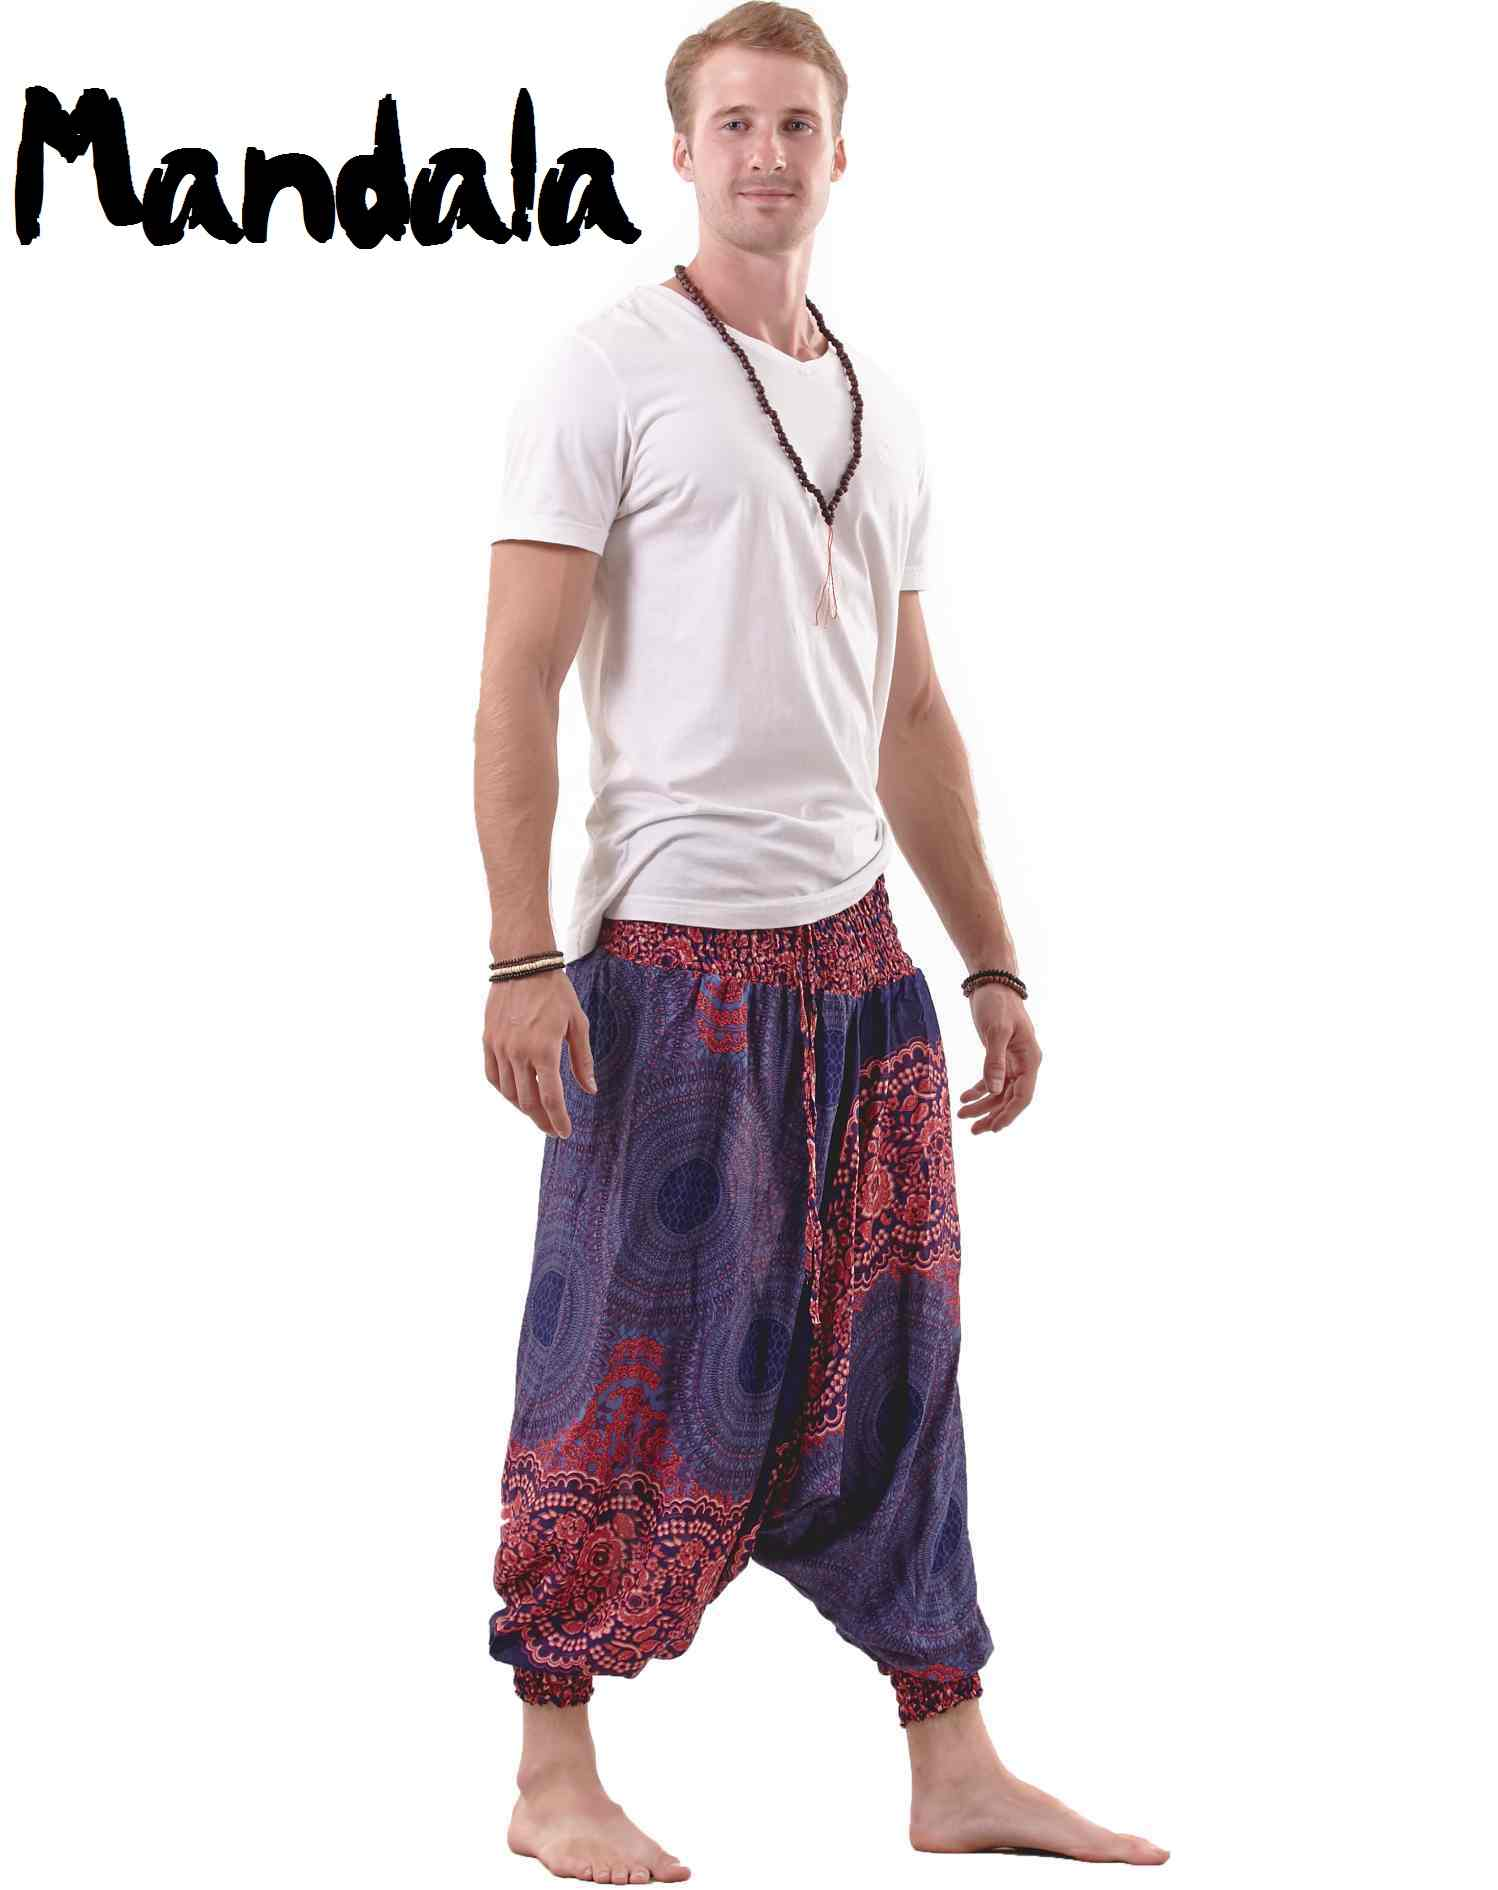 f856008801773e Mens Hippie Fashion - Libaifoundation.Org Image Fashion